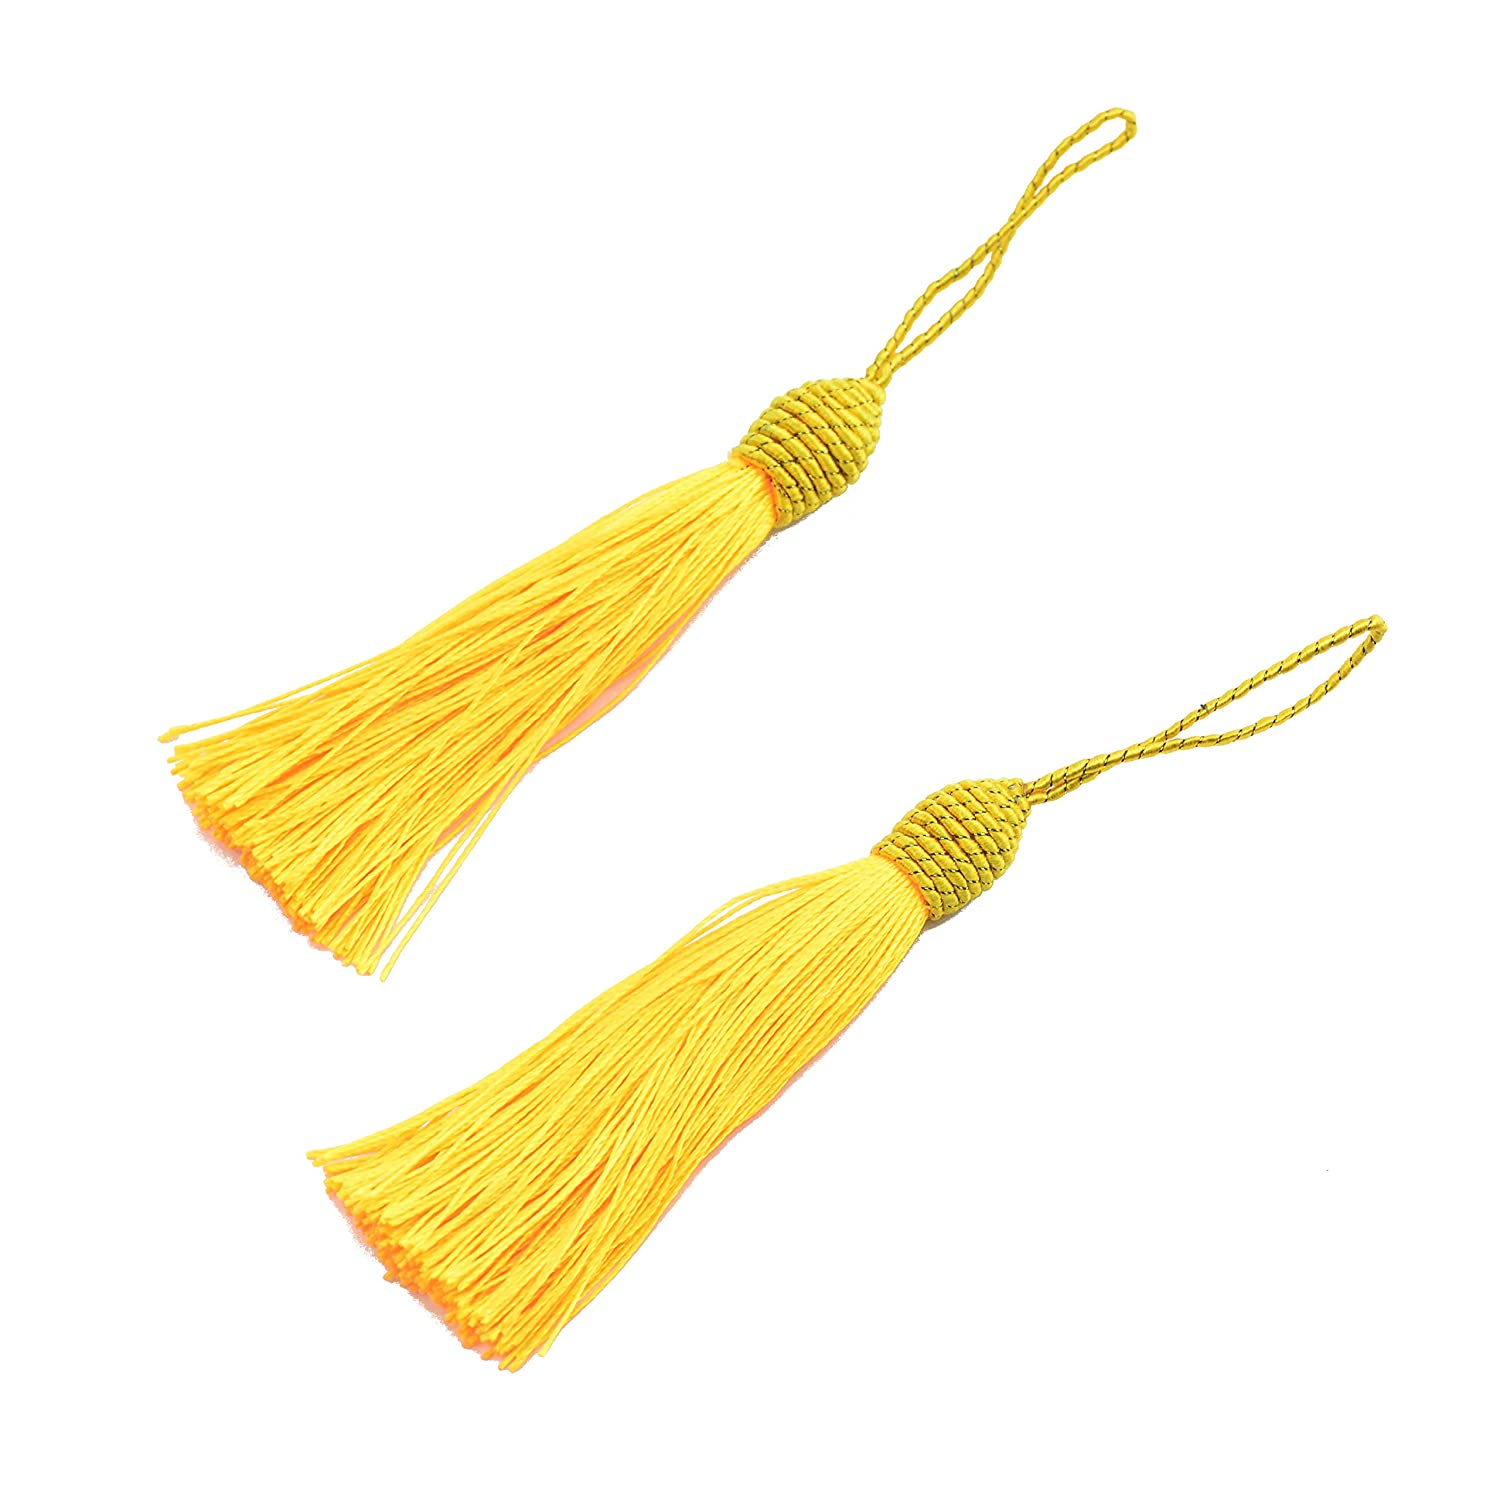 DIY Craft Accessory Bookmarks Souvenir Coffee Makhry 20pcs 15.5cm//6 Inch Silky Floss Bookmark Tassels with 2-Inch Cord Loop and Small Chinese Knot for Jewelry Making